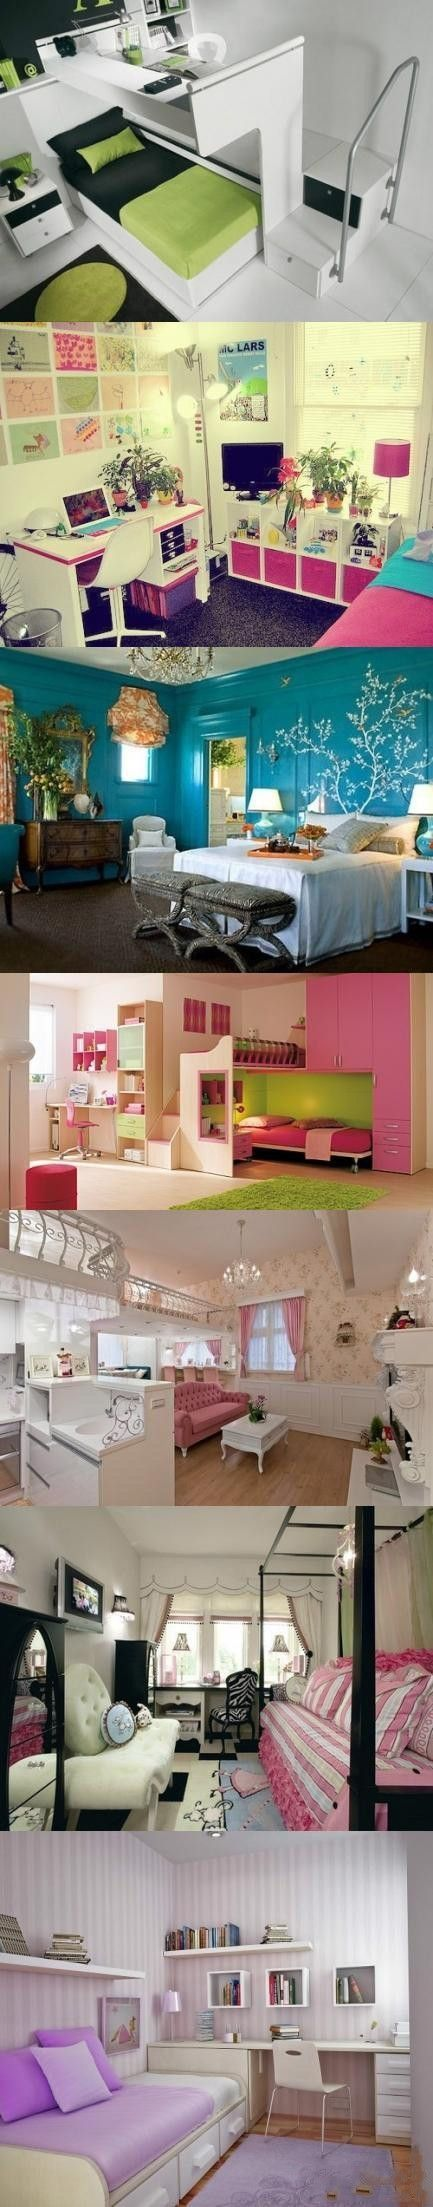 Cool Bedrooms | Amazing Homes and Interior Porn  | Bedrooms, Room Ideas and Bedroom Ideas